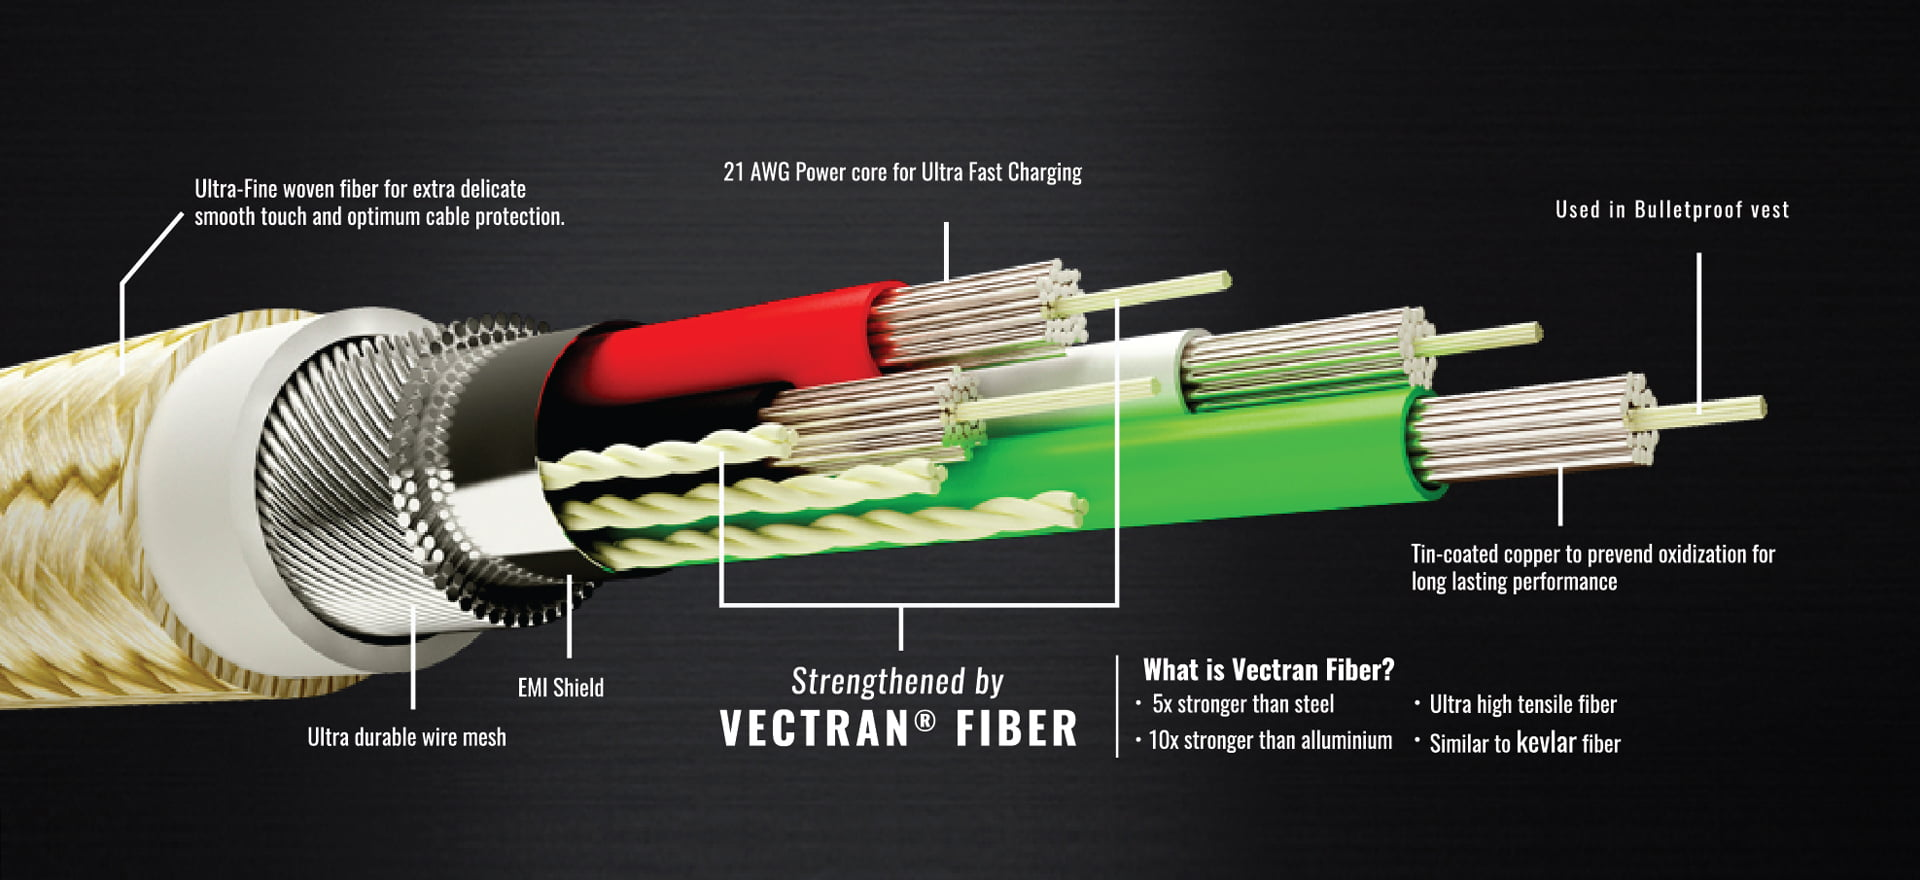 lighting cable made from vectran fiber. mfi certified